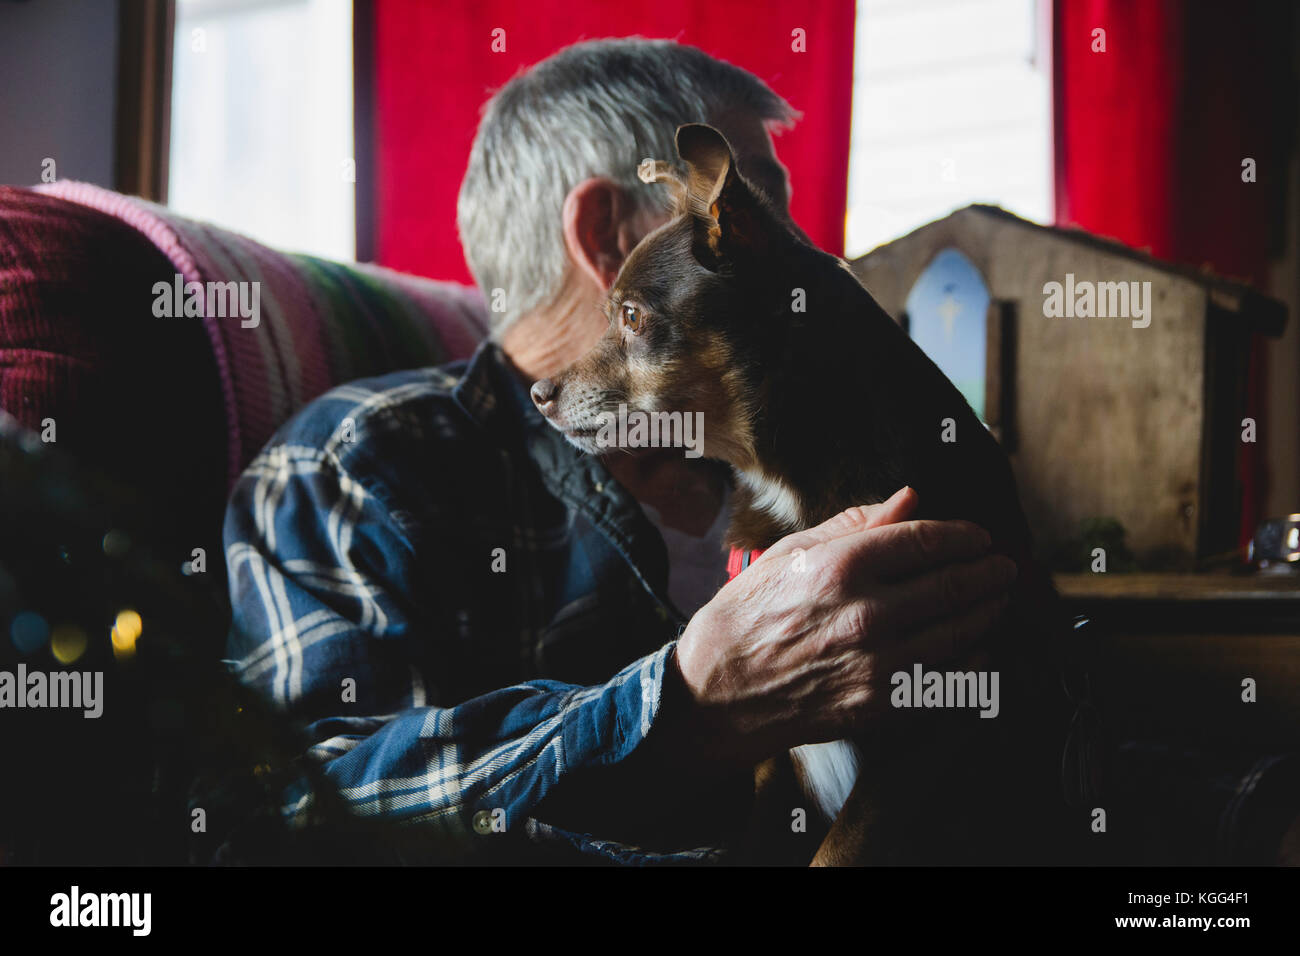 A small dog sits on the lap of an elderly man. - Stock Image